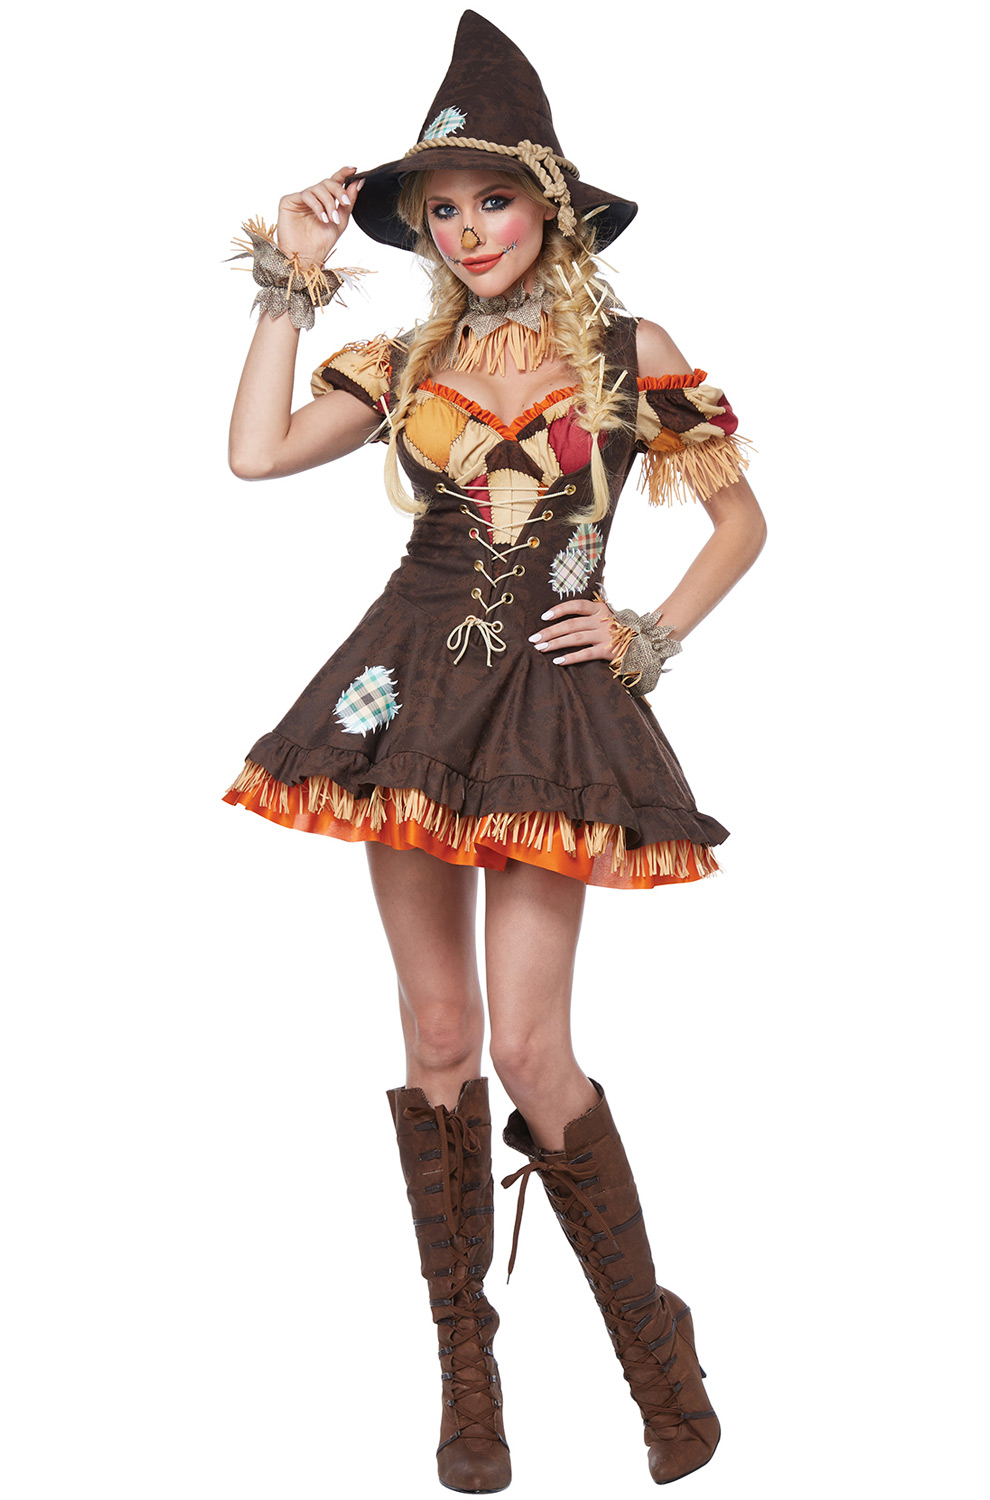 Halloween Costume Ideas For Groups: Sassy Scarecrow Adult Costume